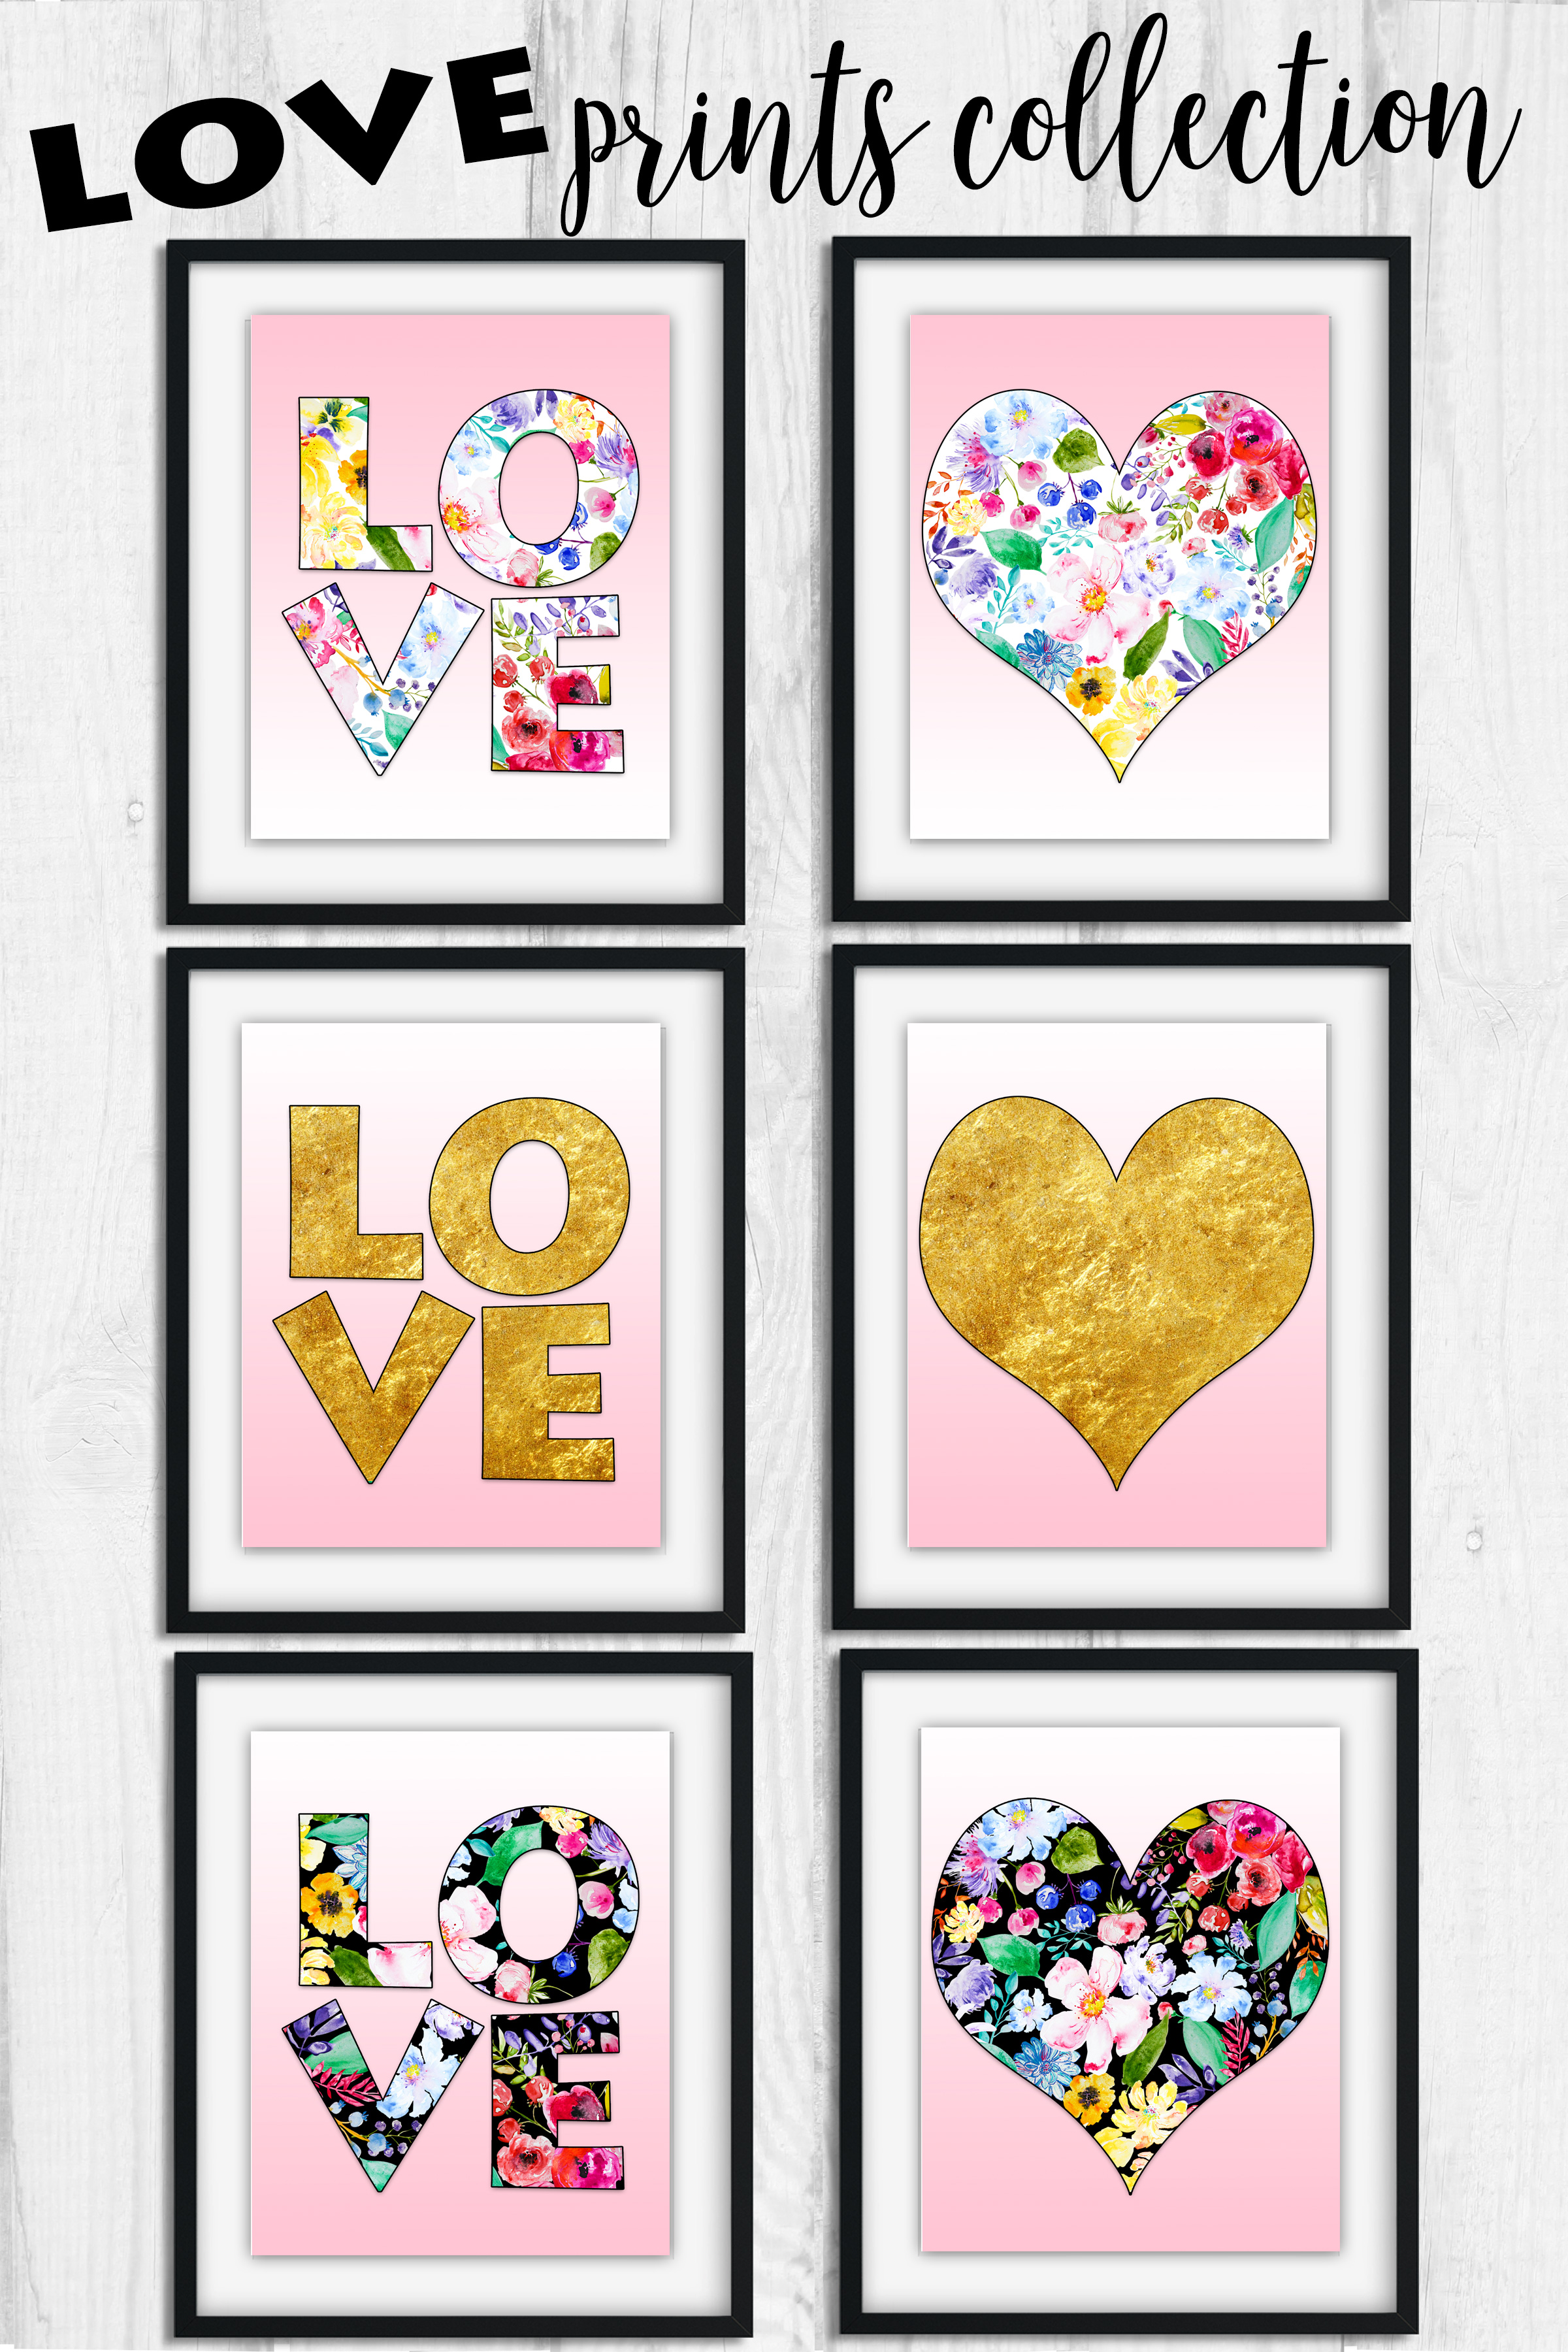 LOVE and heart framed set of prints in 3 color options